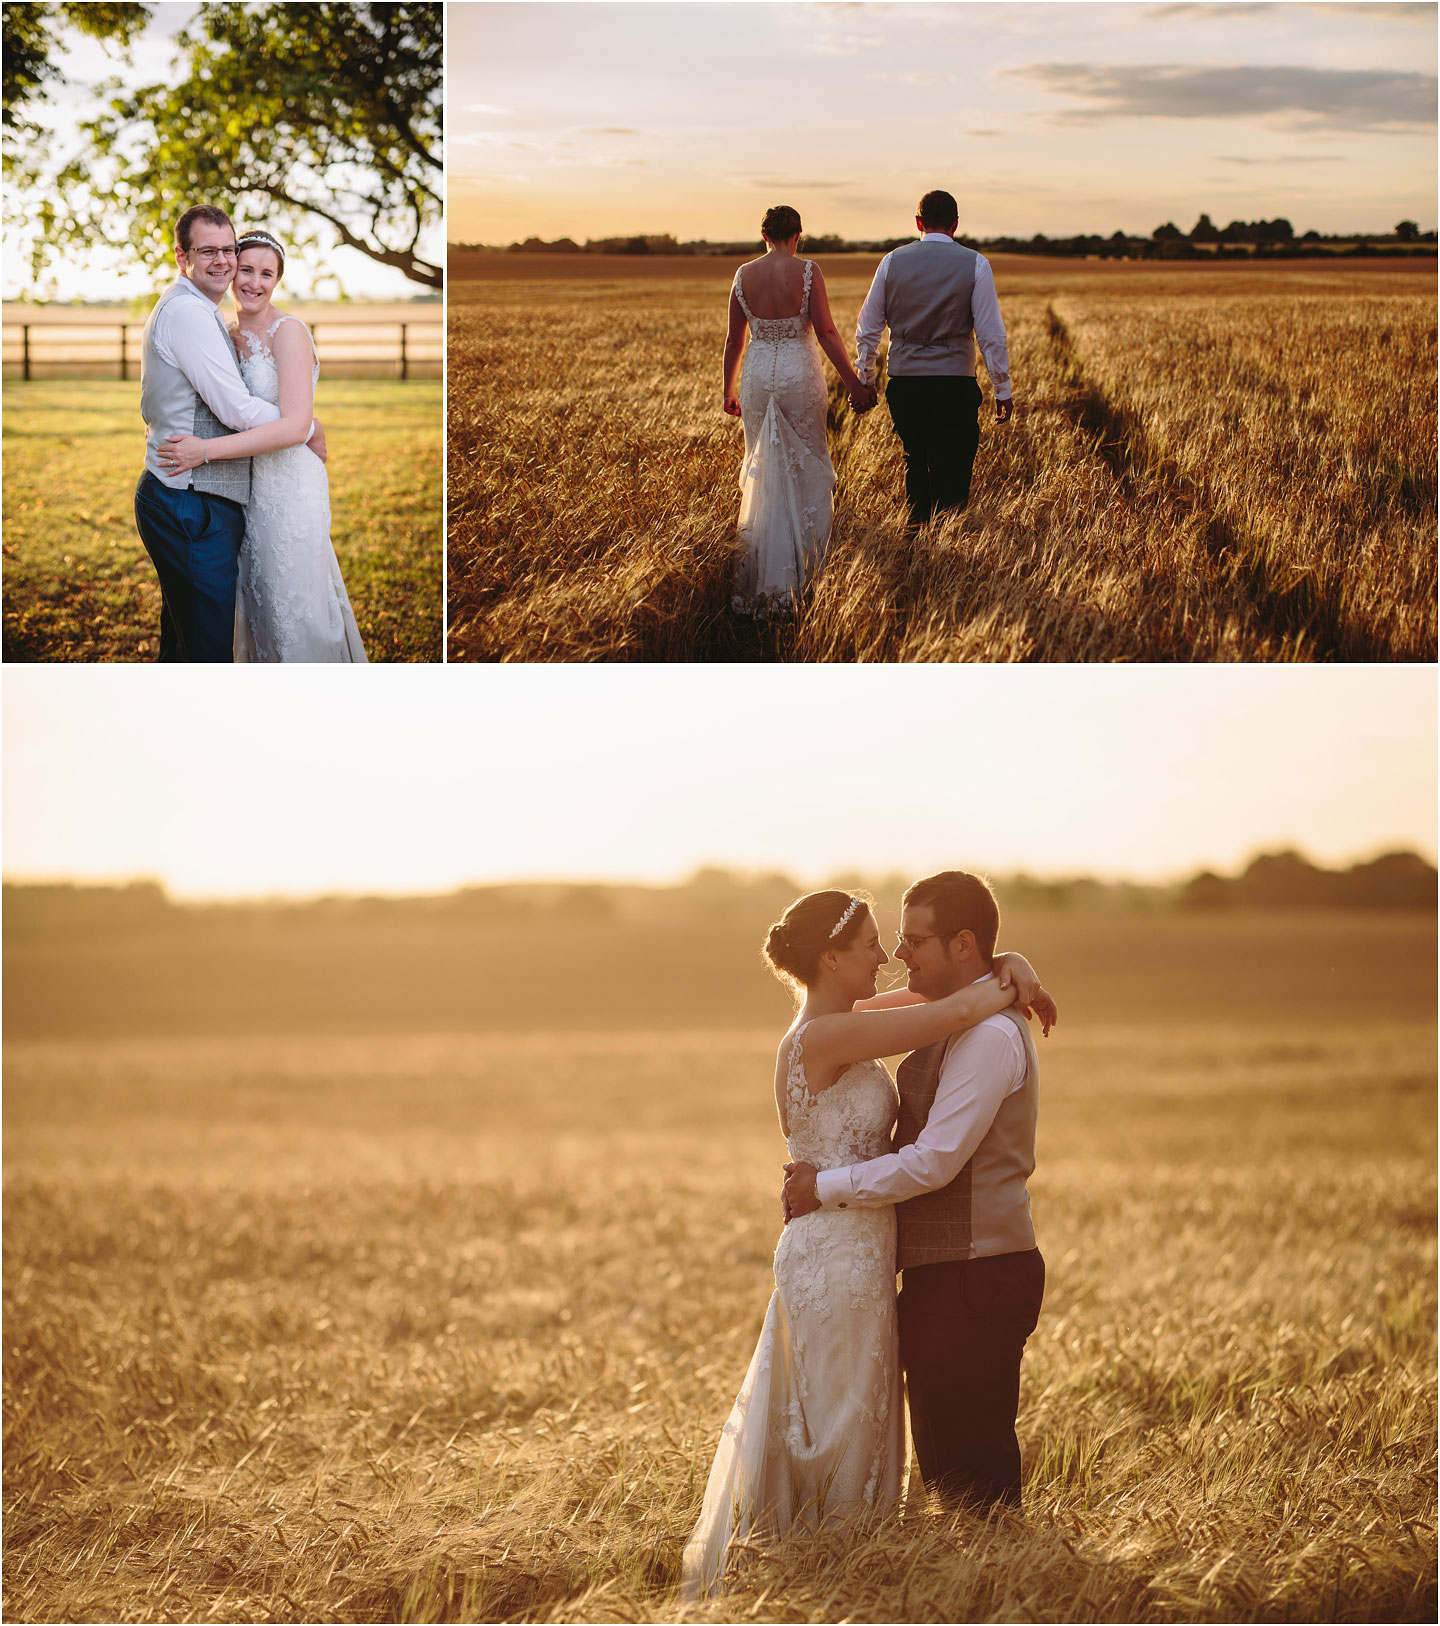 Wedding golden hour photos at Barmbyfields Barn wedding venue near York